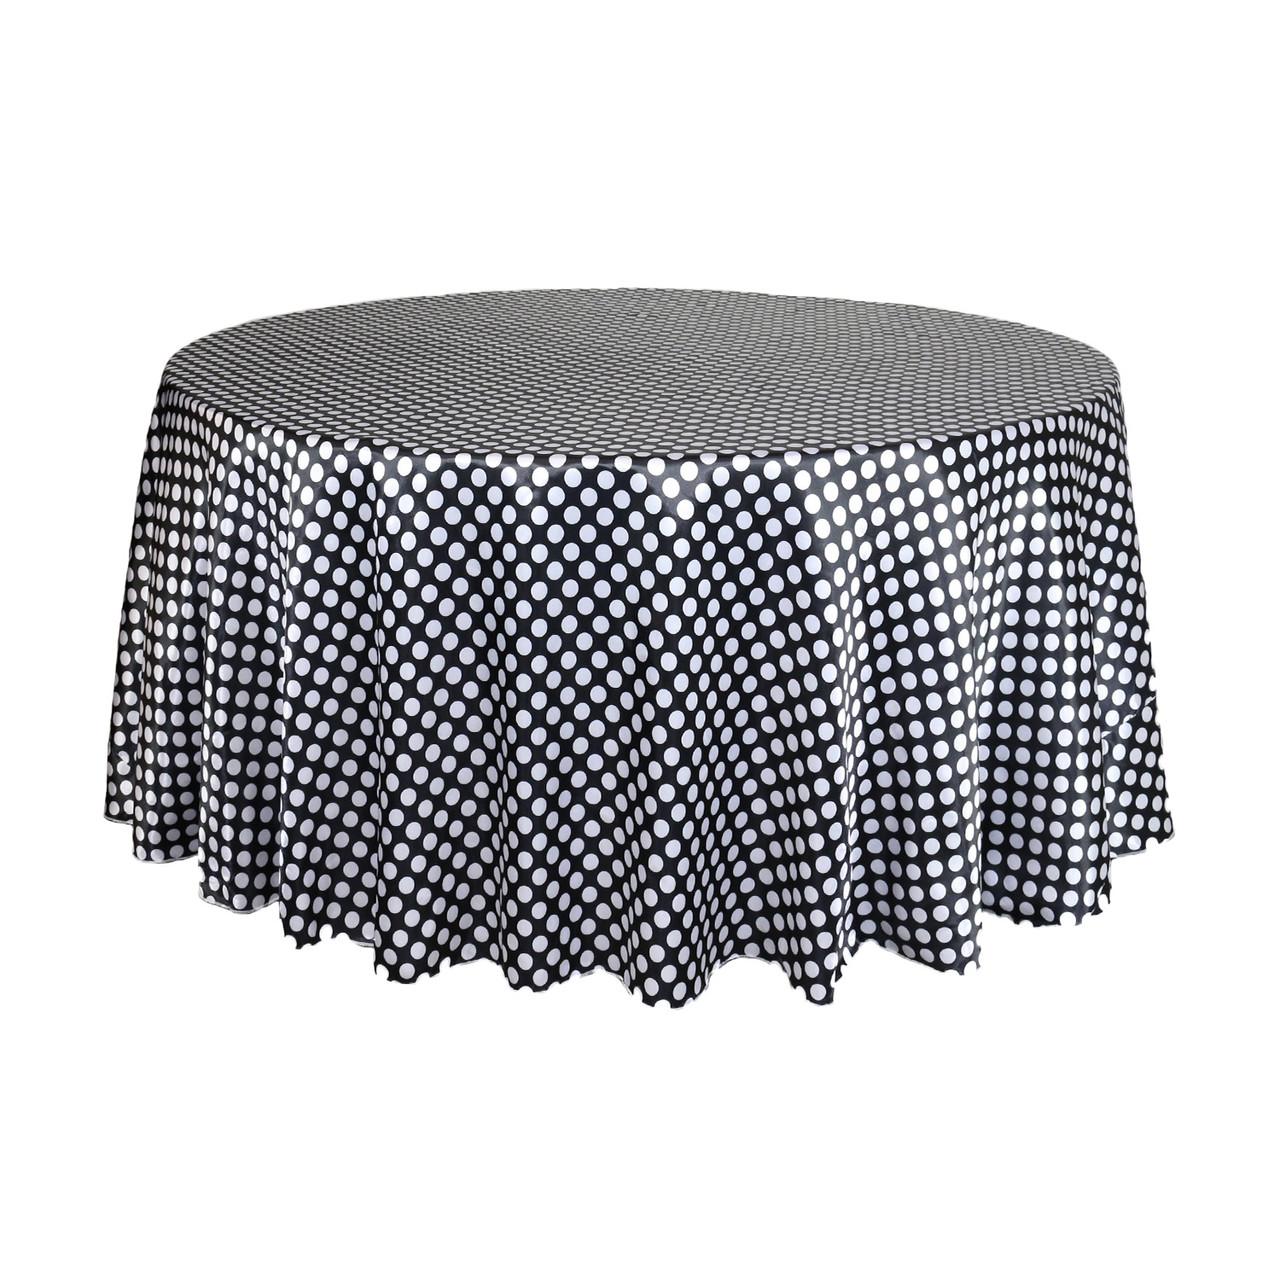 Fantastic 120 Inch Round Satin Tablecloth Black White Polka Dots Beatyapartments Chair Design Images Beatyapartmentscom